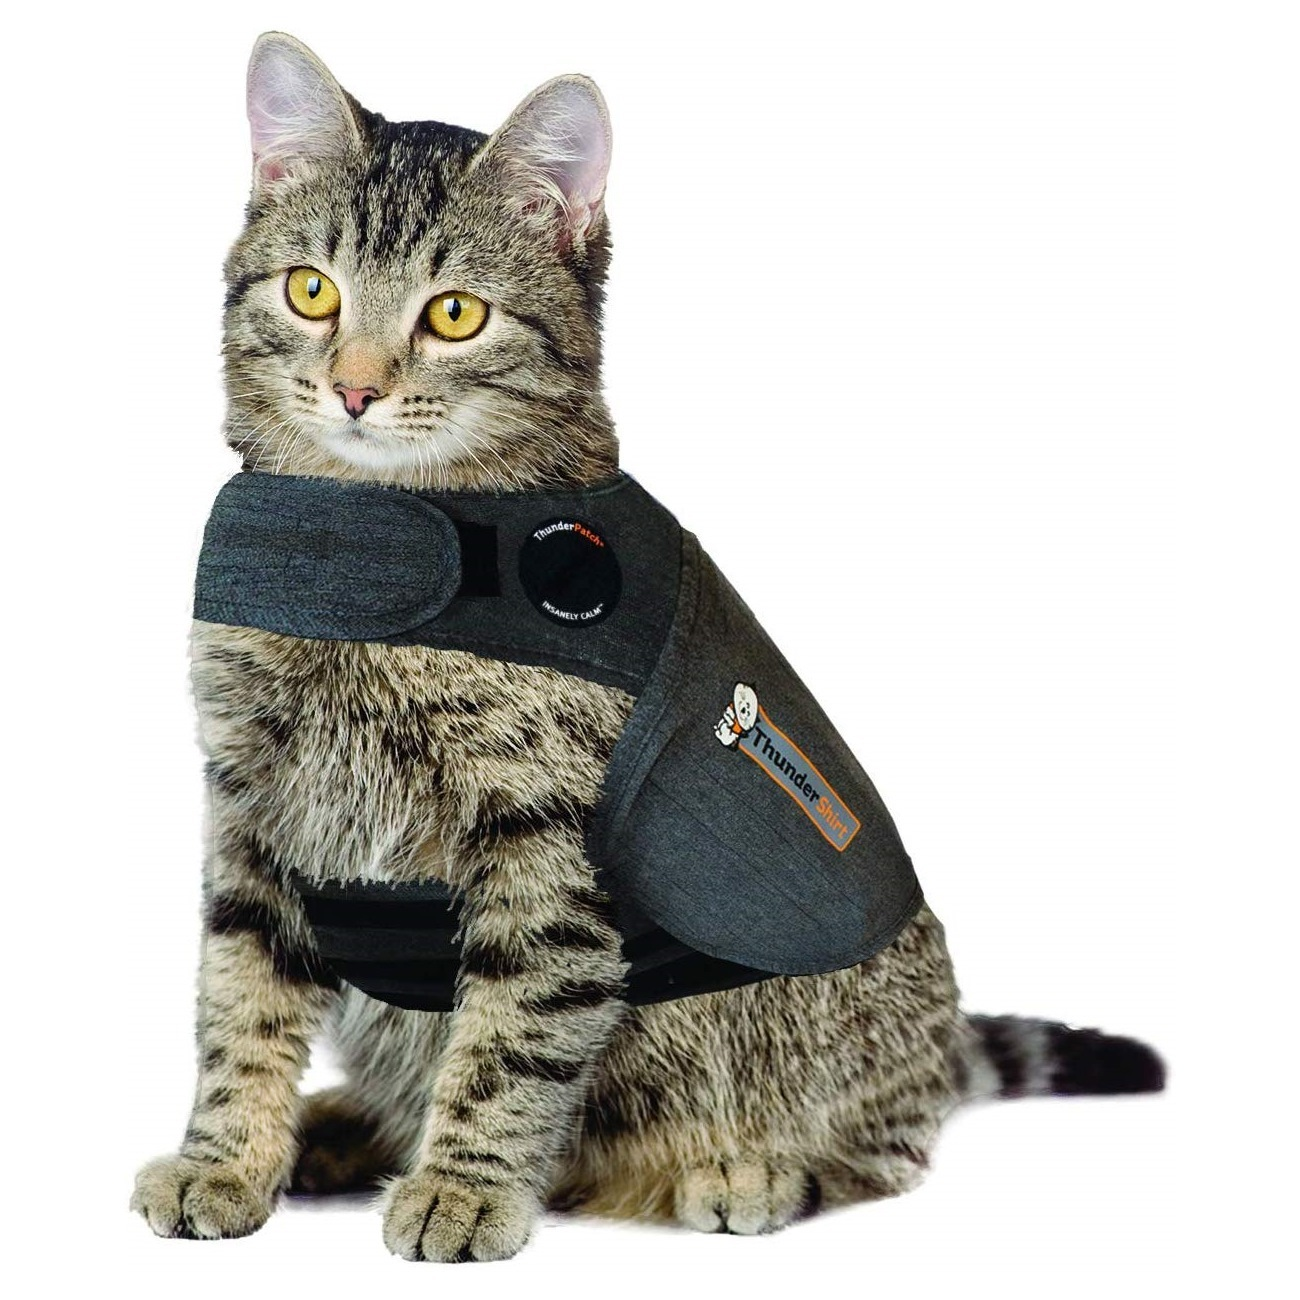 What Size Vest Should I Get For A Dog